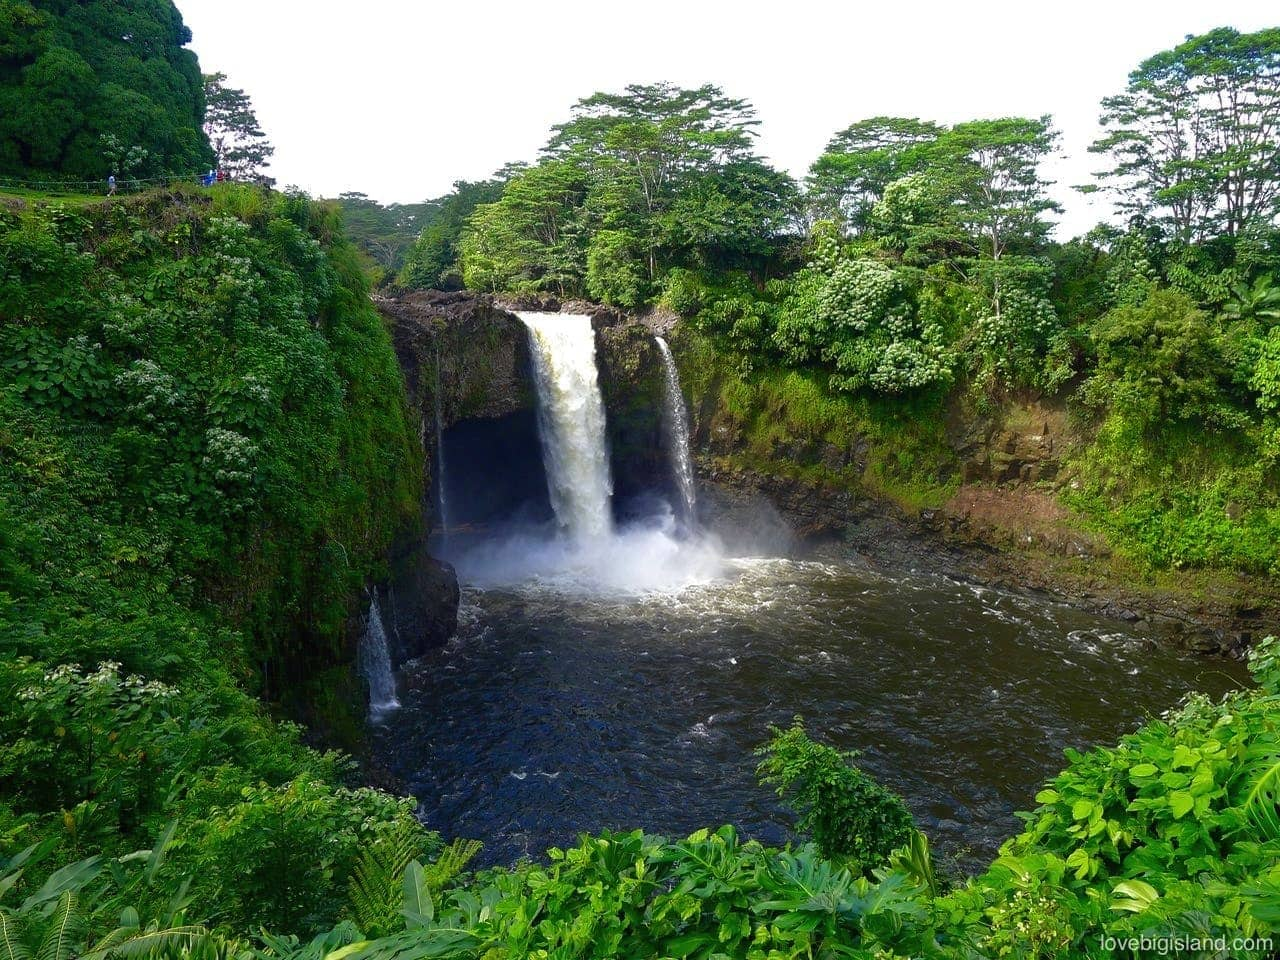 Rainbow Falls (Waiānuenue) in Hilo, Hawaii